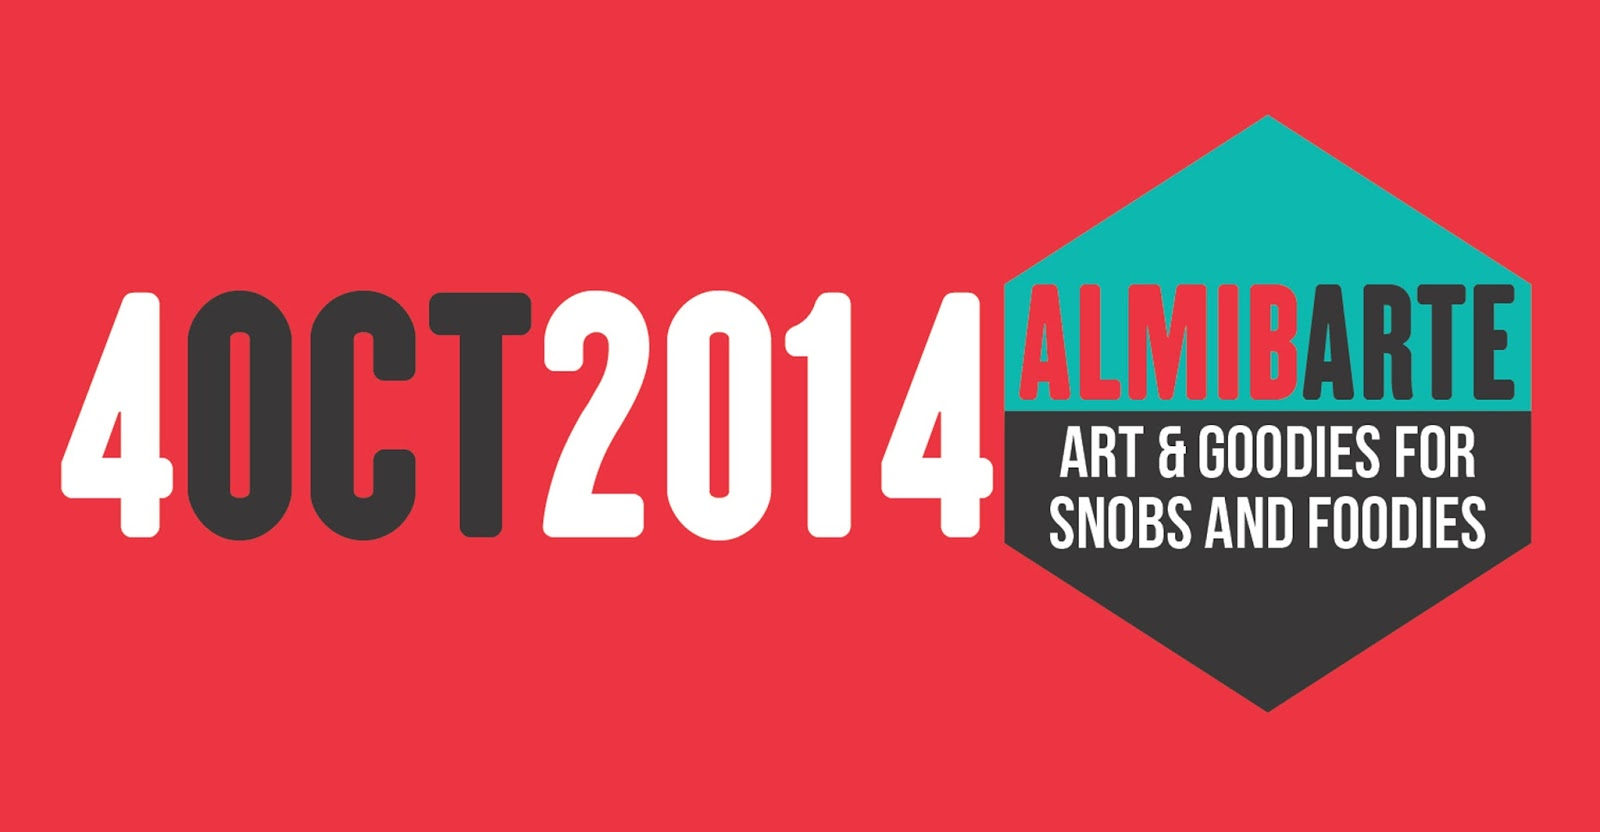 Almibarte 2014 Art and Goodies for Snobs and Foodies